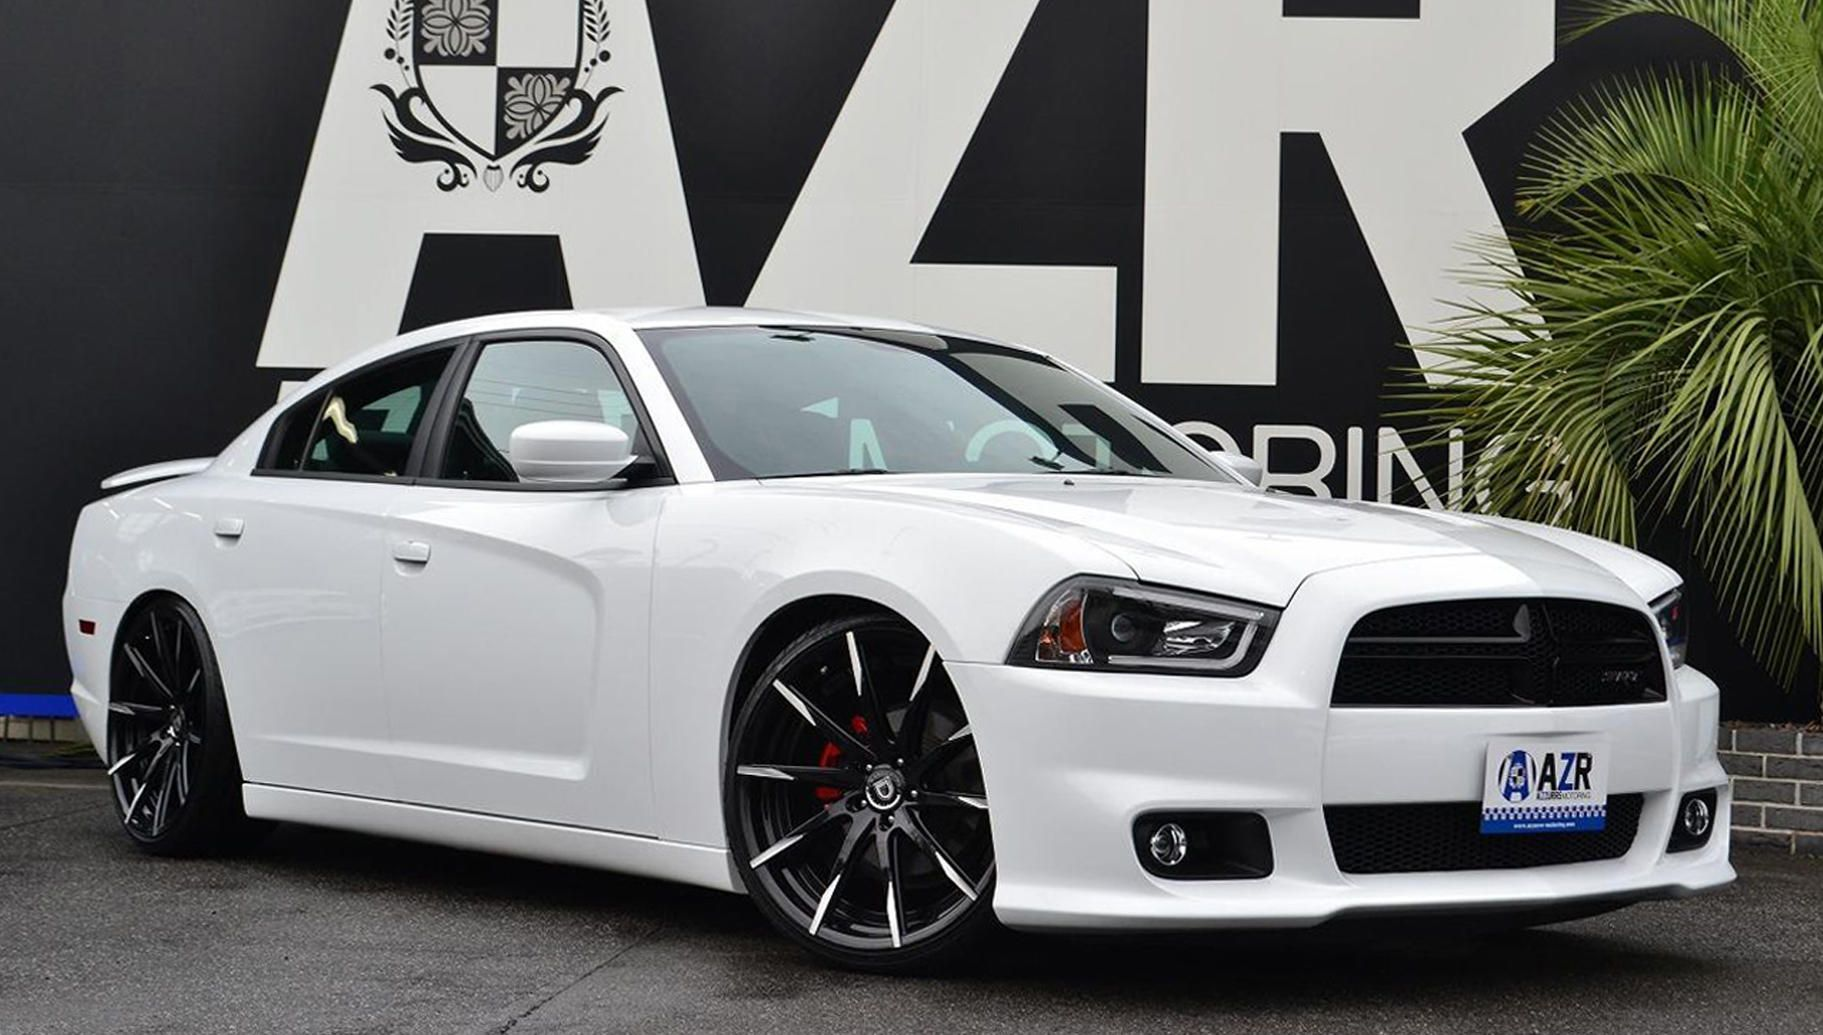 dodge charger 2012 white with black rims - Dodge Charger 2013 White Black Rims